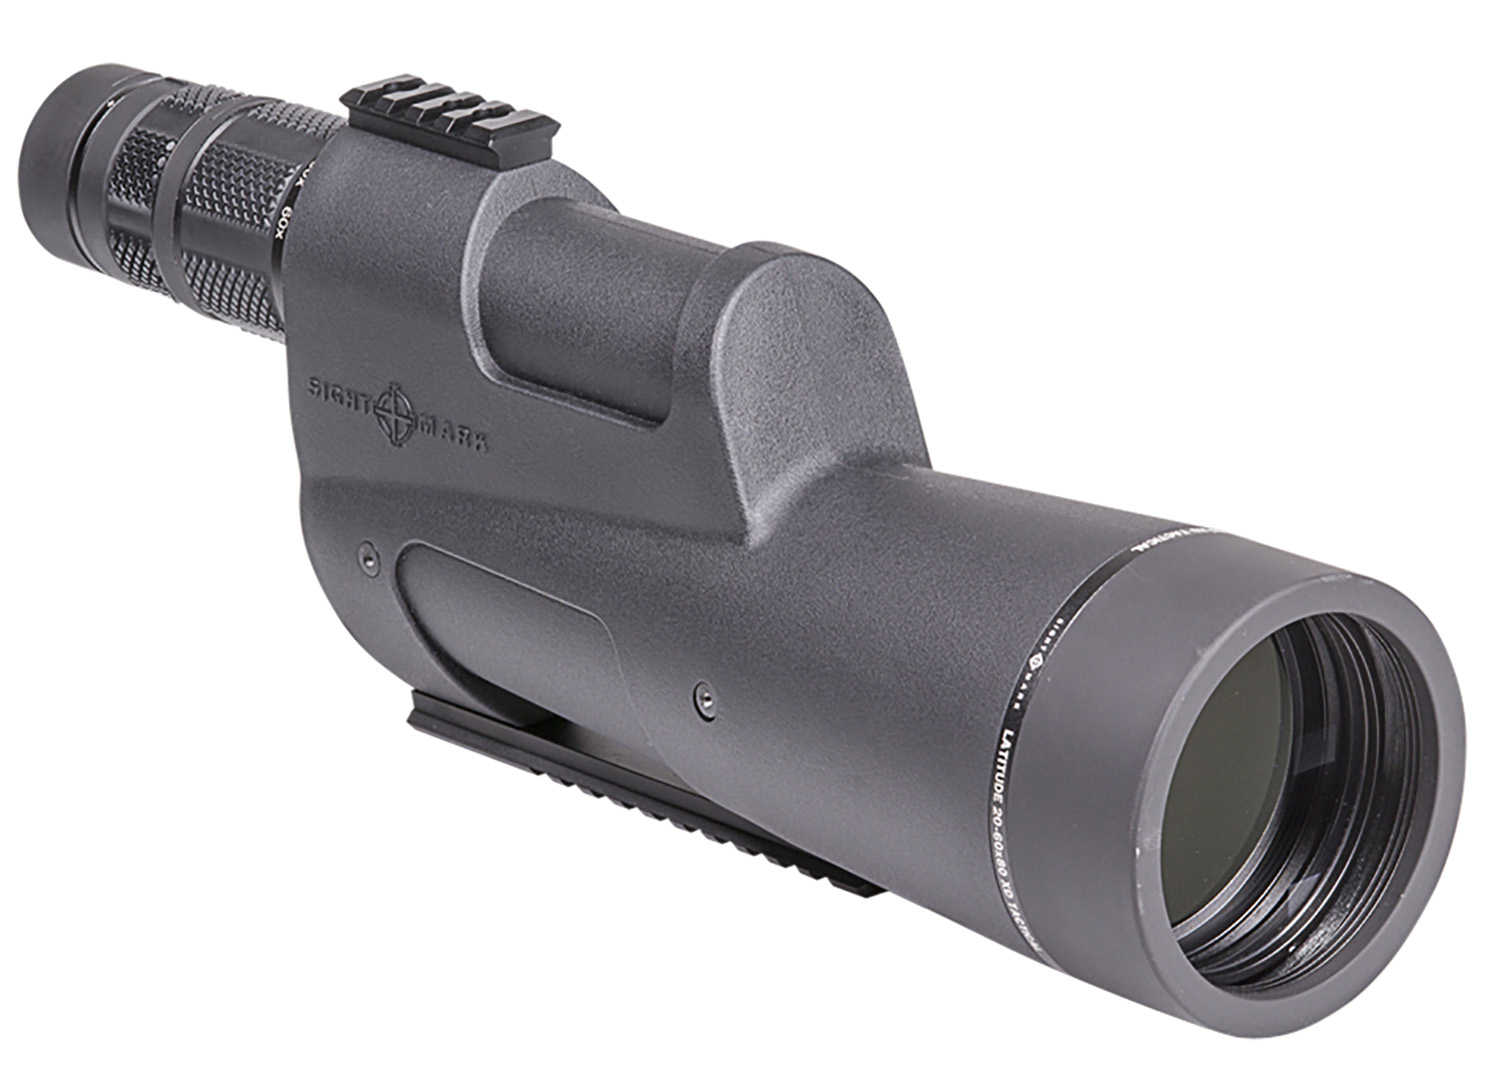 Sightmark SM11034T Latitude XD Tactical Spotting Scope 20-60x 80mm 131.10-43.50 ft @ 1000 yds FOV 1.06